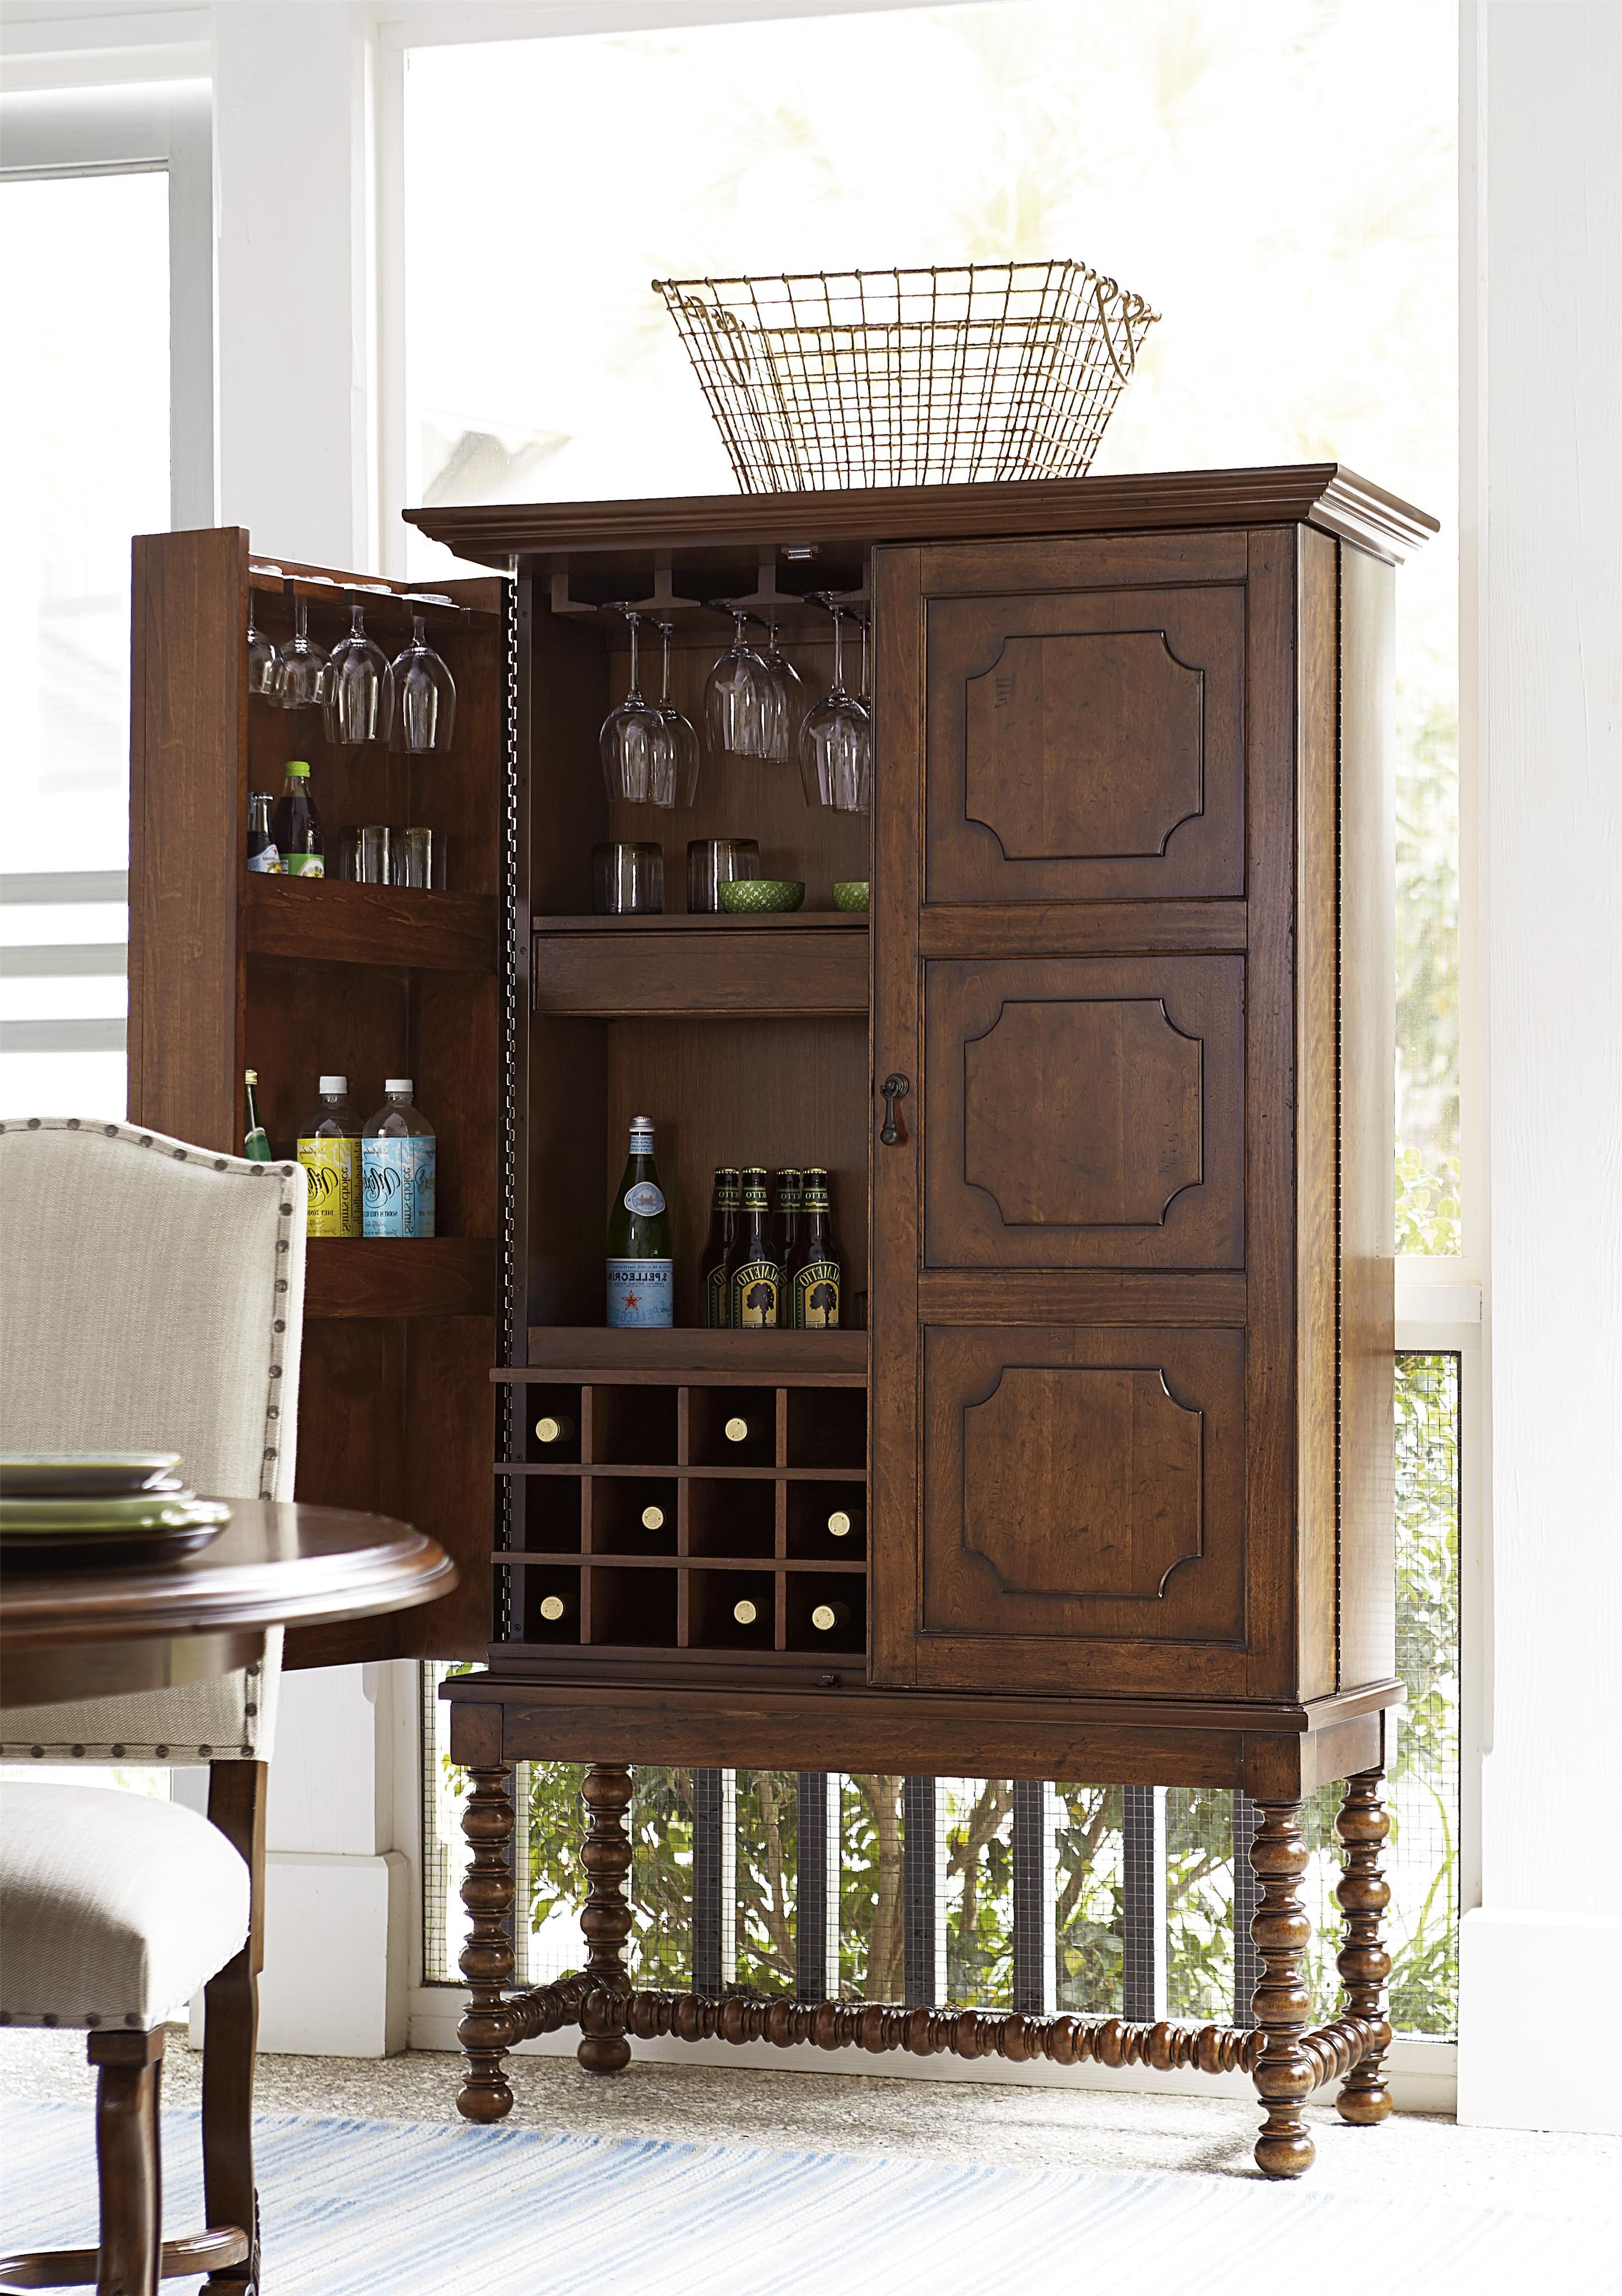 Dogwood Quot A Guy Walks Into A Bar Quot Cabinet By Universal At